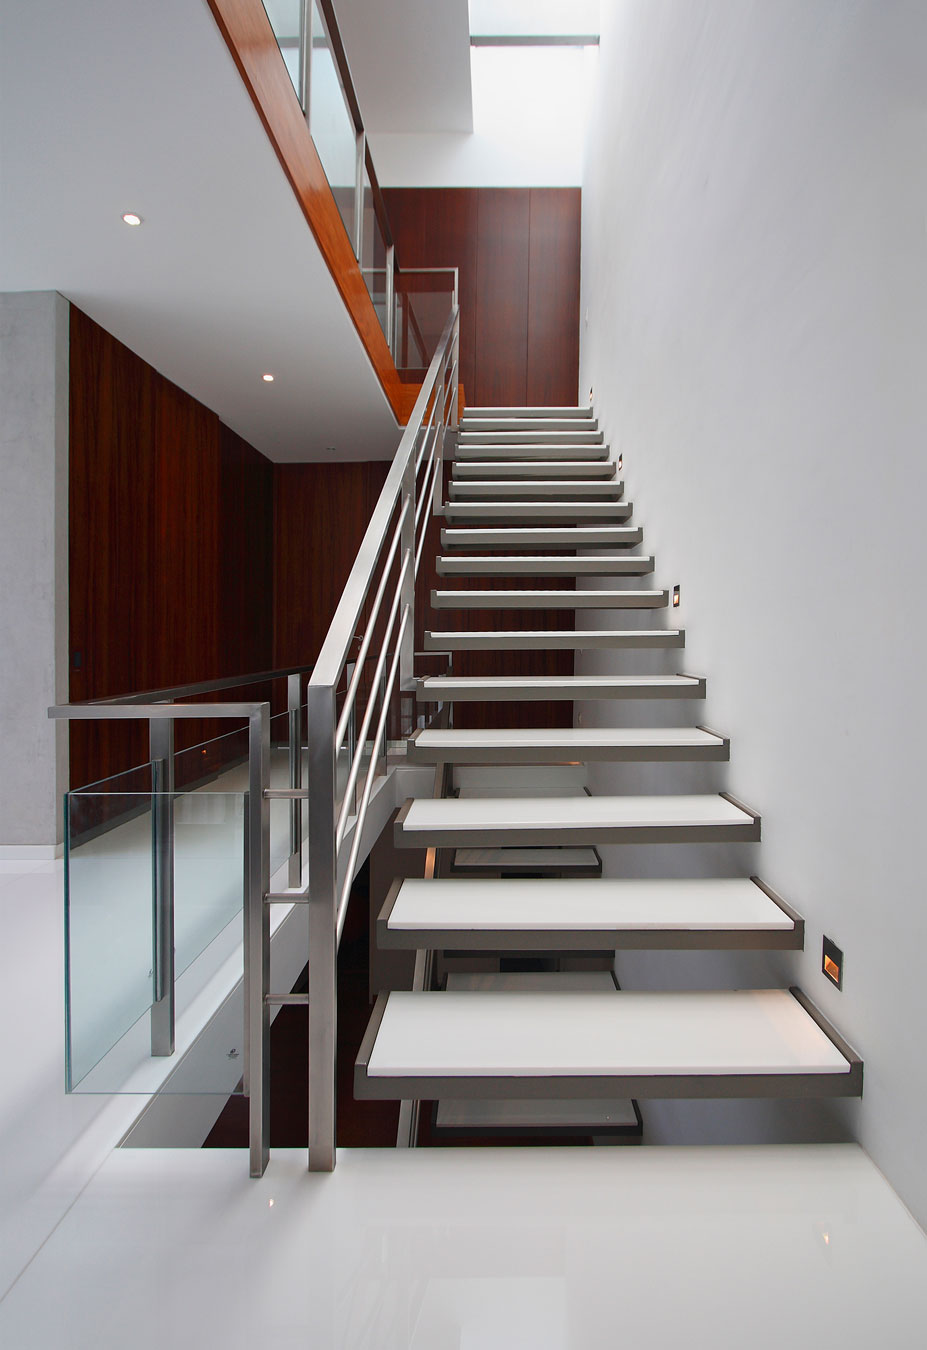 Details-Staircase-White-Elements